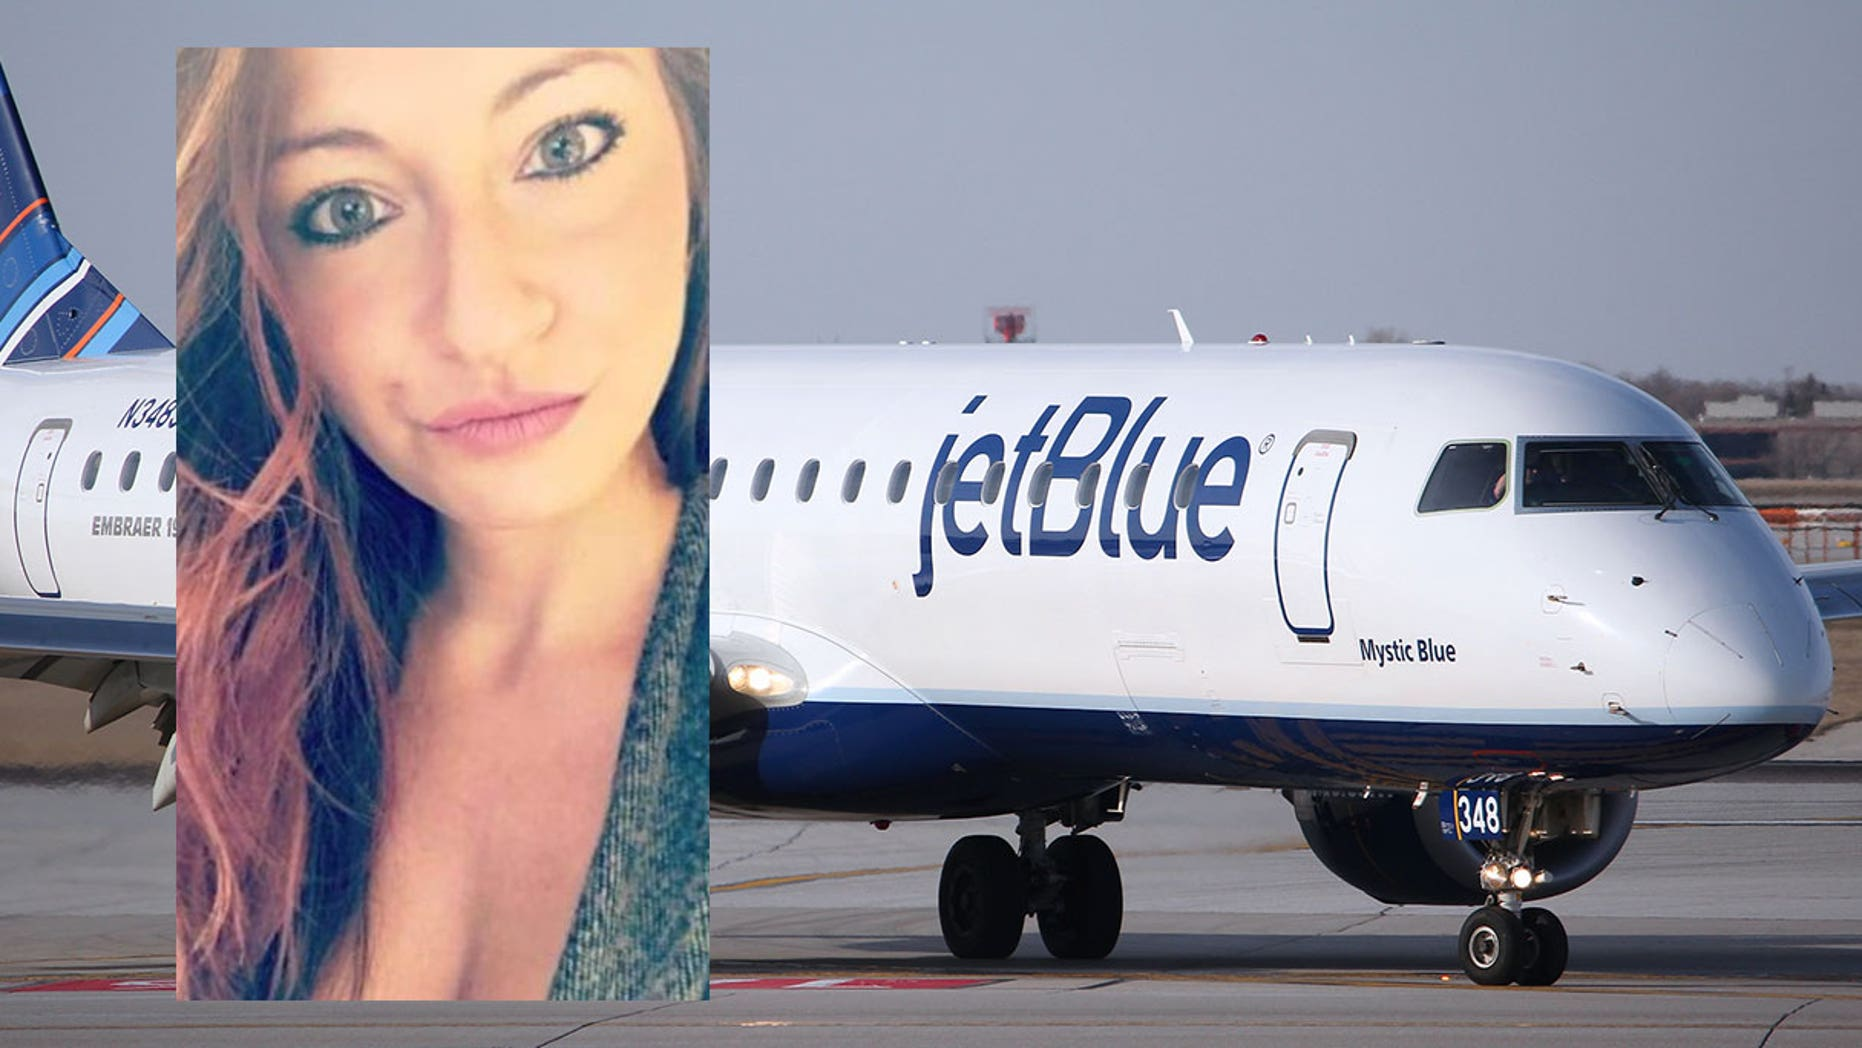 """Robin Ducore (inset) allegedly assaulted the flight crew, """"flirtatiously"""" touched a passenger's head, and threw food on a Jetblue flight in July."""